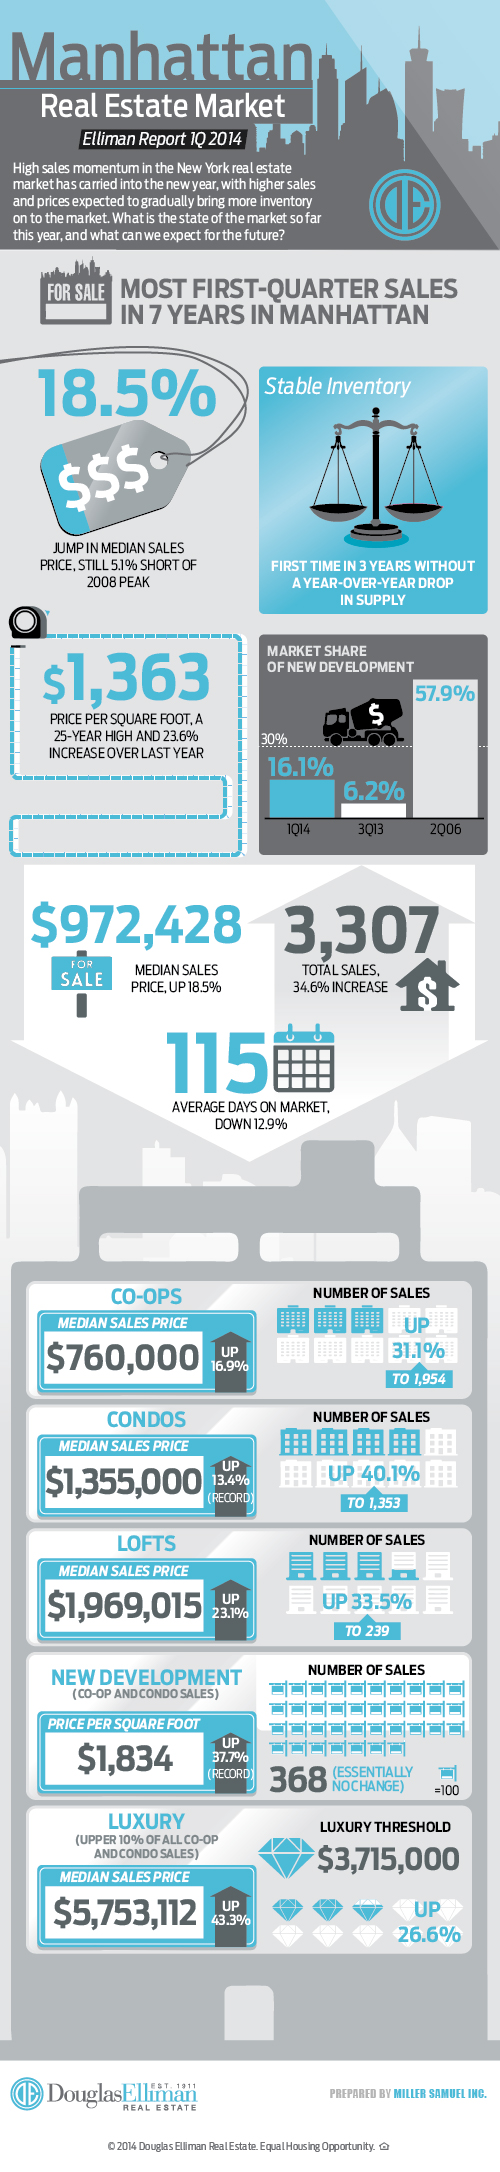 Manhattan Market Report Infographic